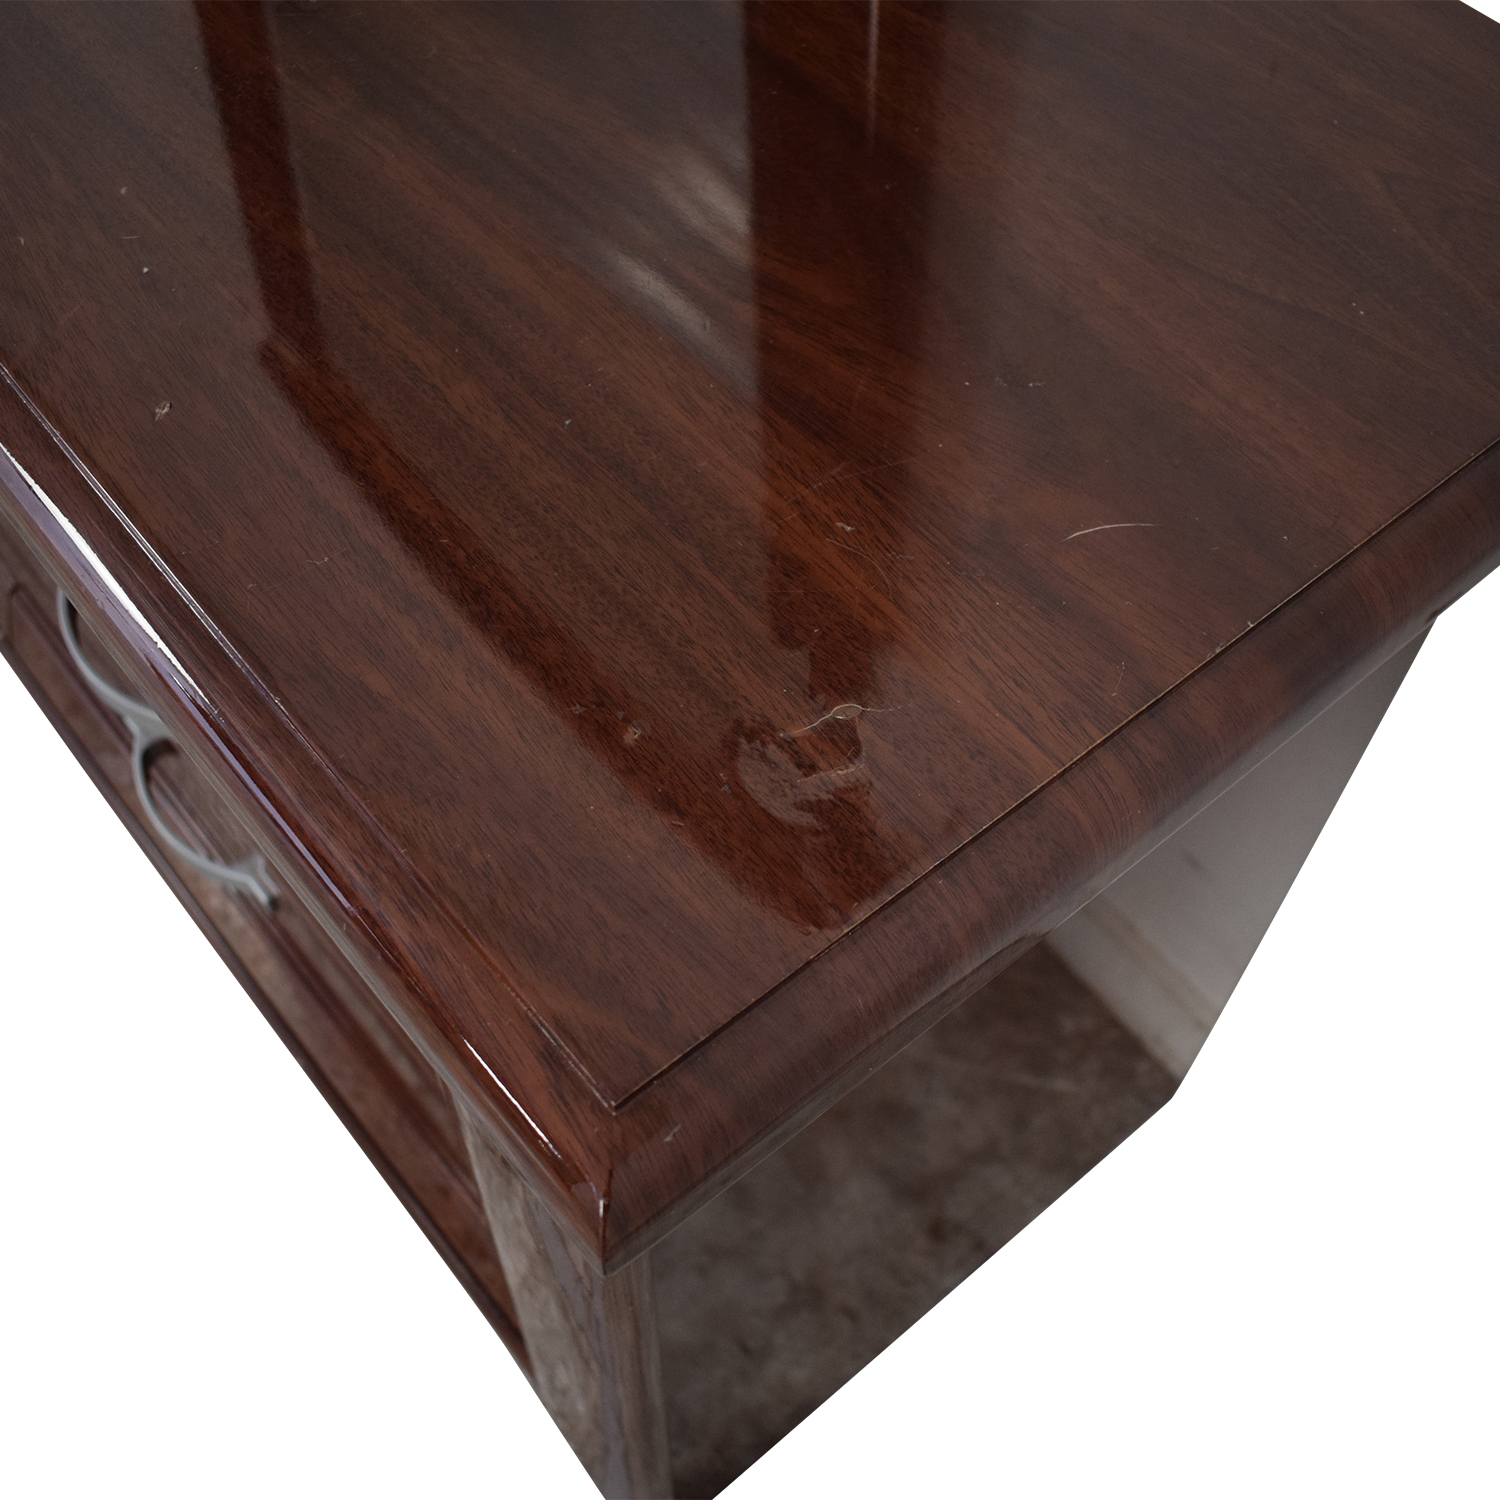 Arros Group Arros Group Furniture Dresser with Mirror nyc